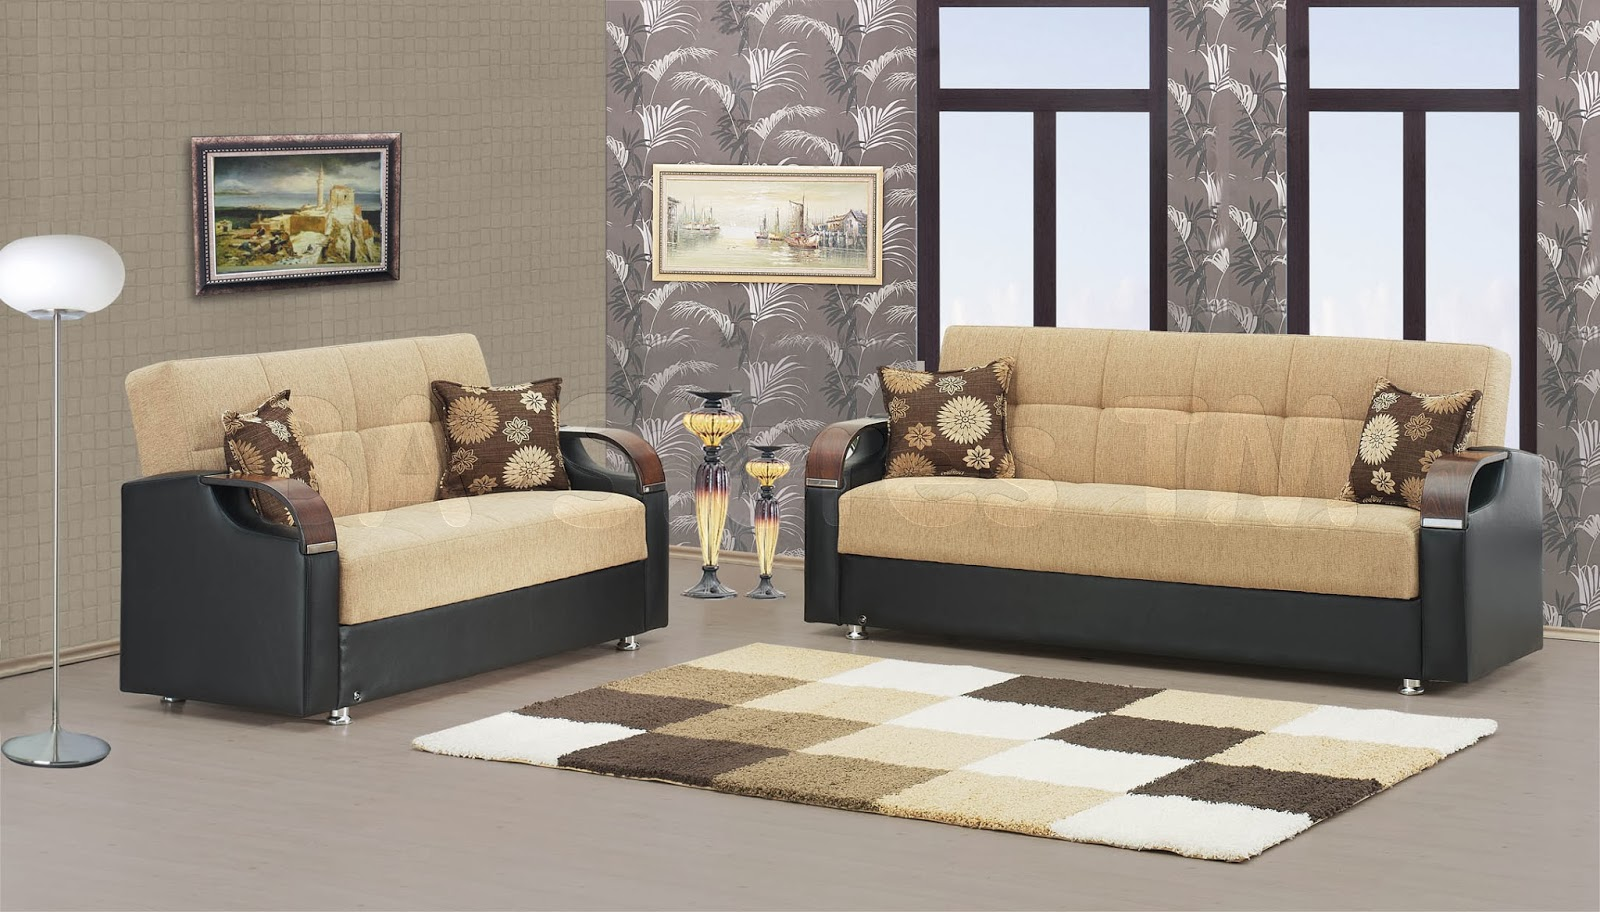 New fashion in sofa set design 2014 for Living room sofa sets